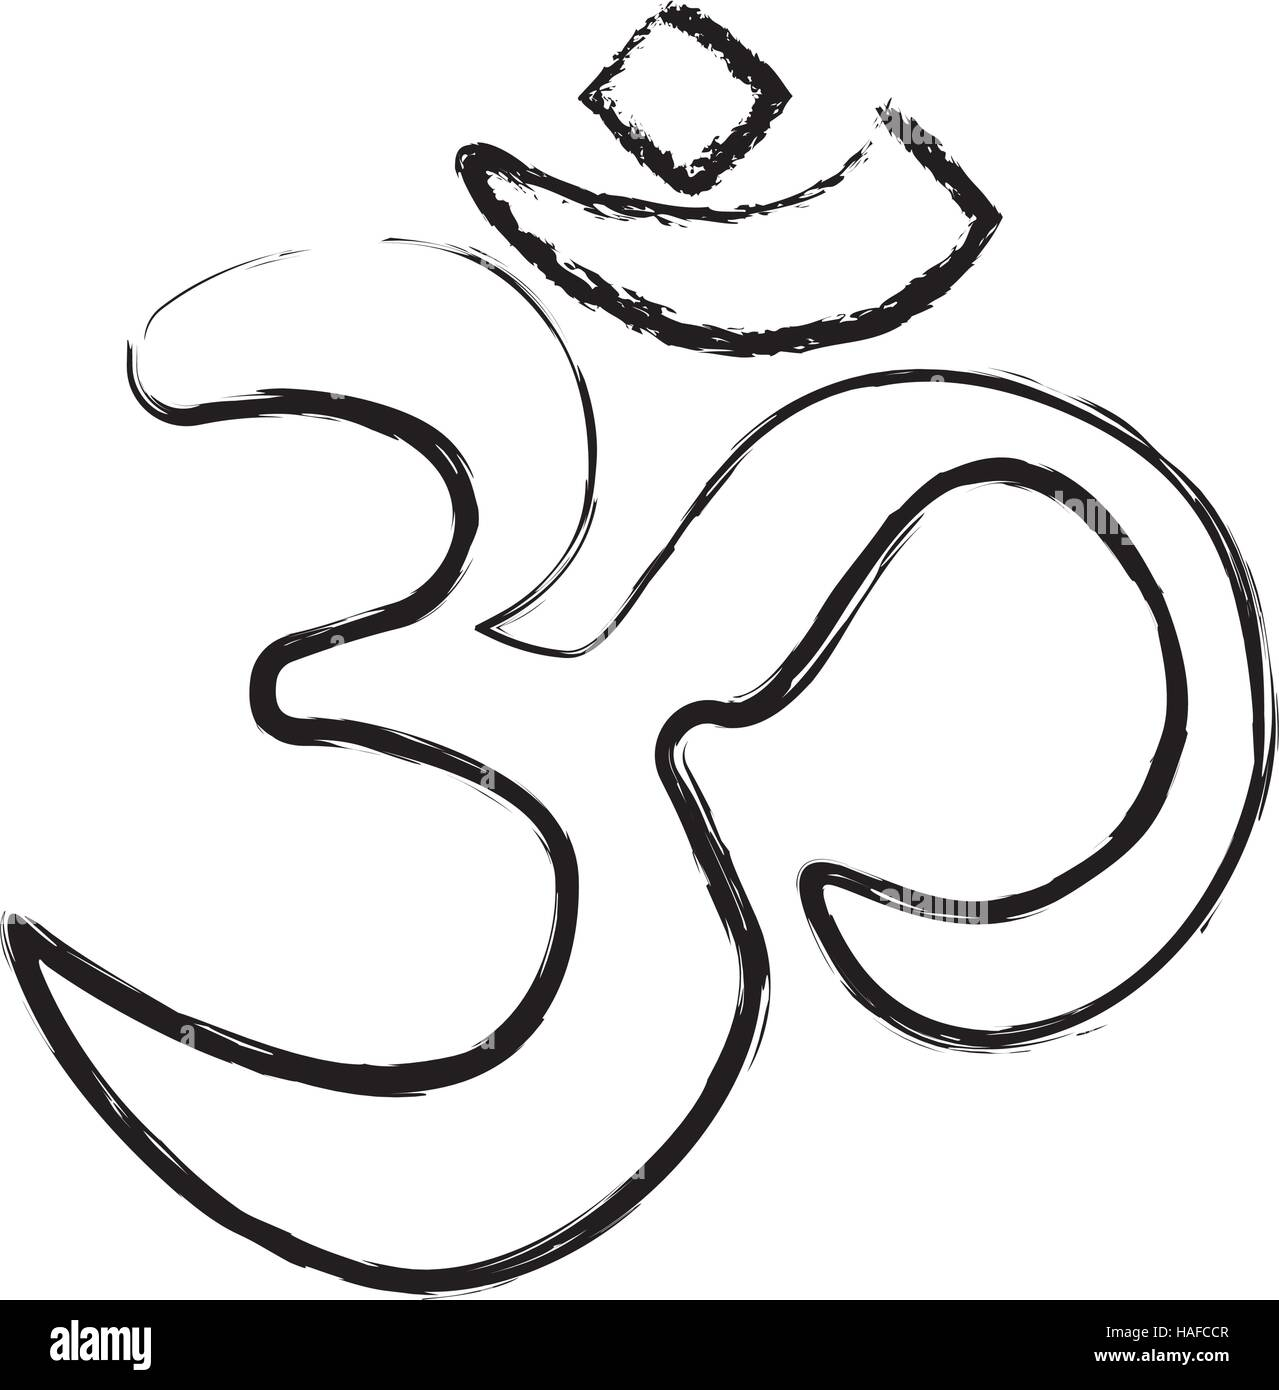 Hinduism Symbol Black and White Stock Photos & Images - Alamy